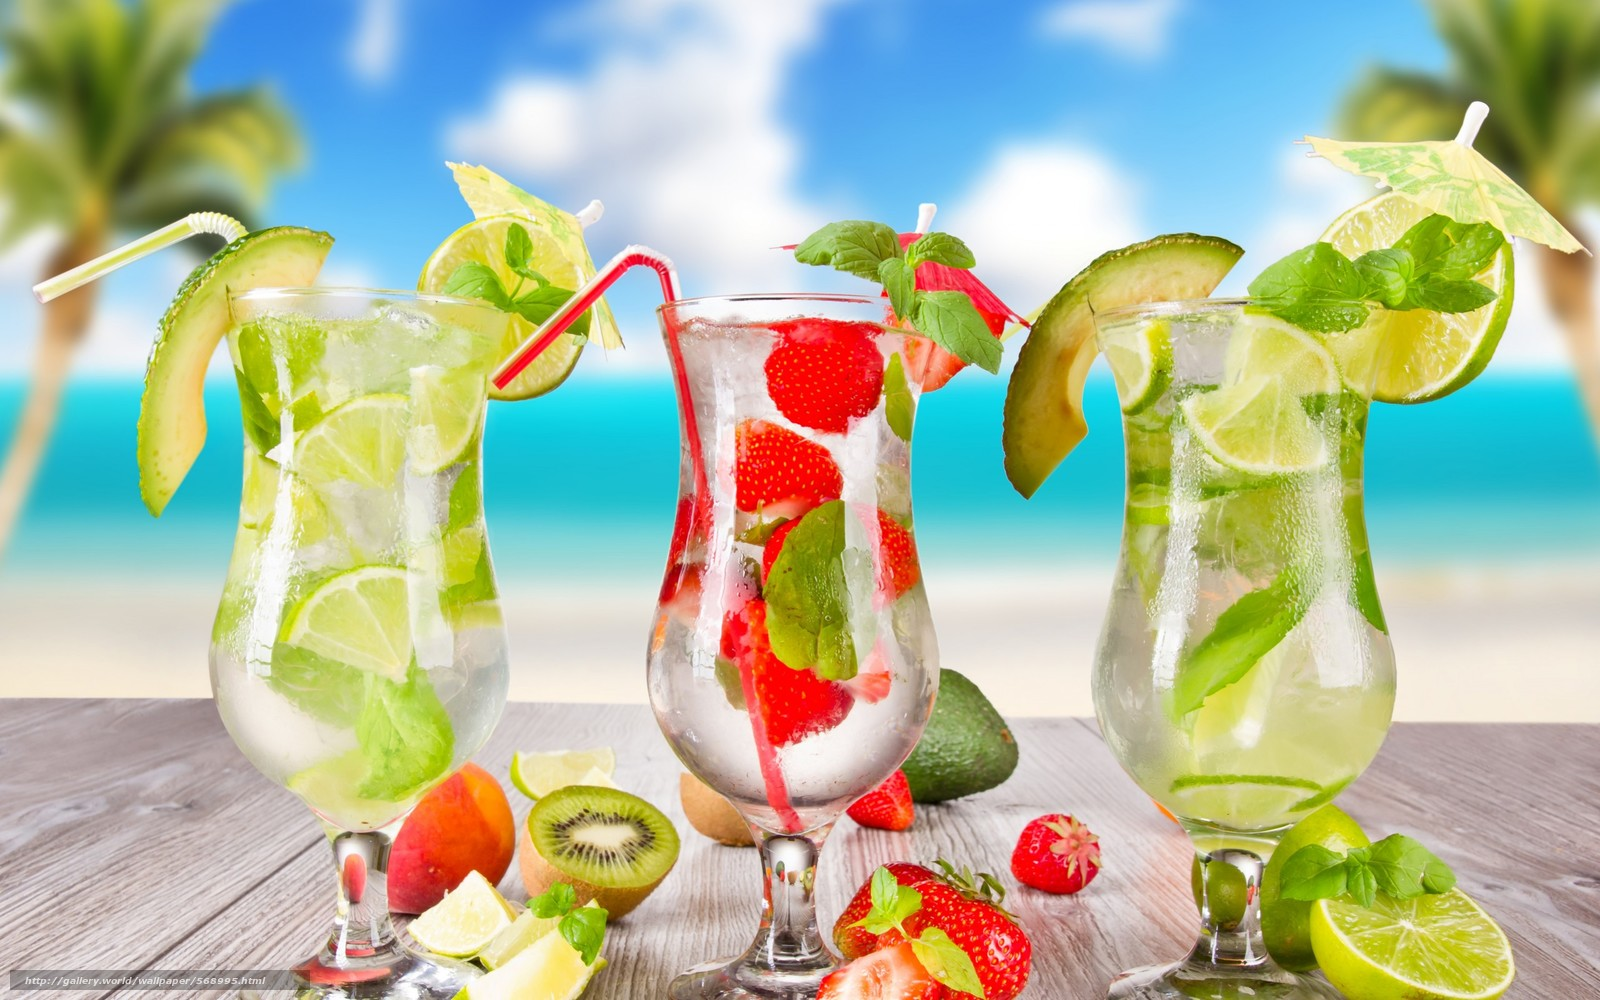 Download Wallpaper Food Drink Drinks Colorful Free Desktop In The Resolution 2560x1600 Picture No568995